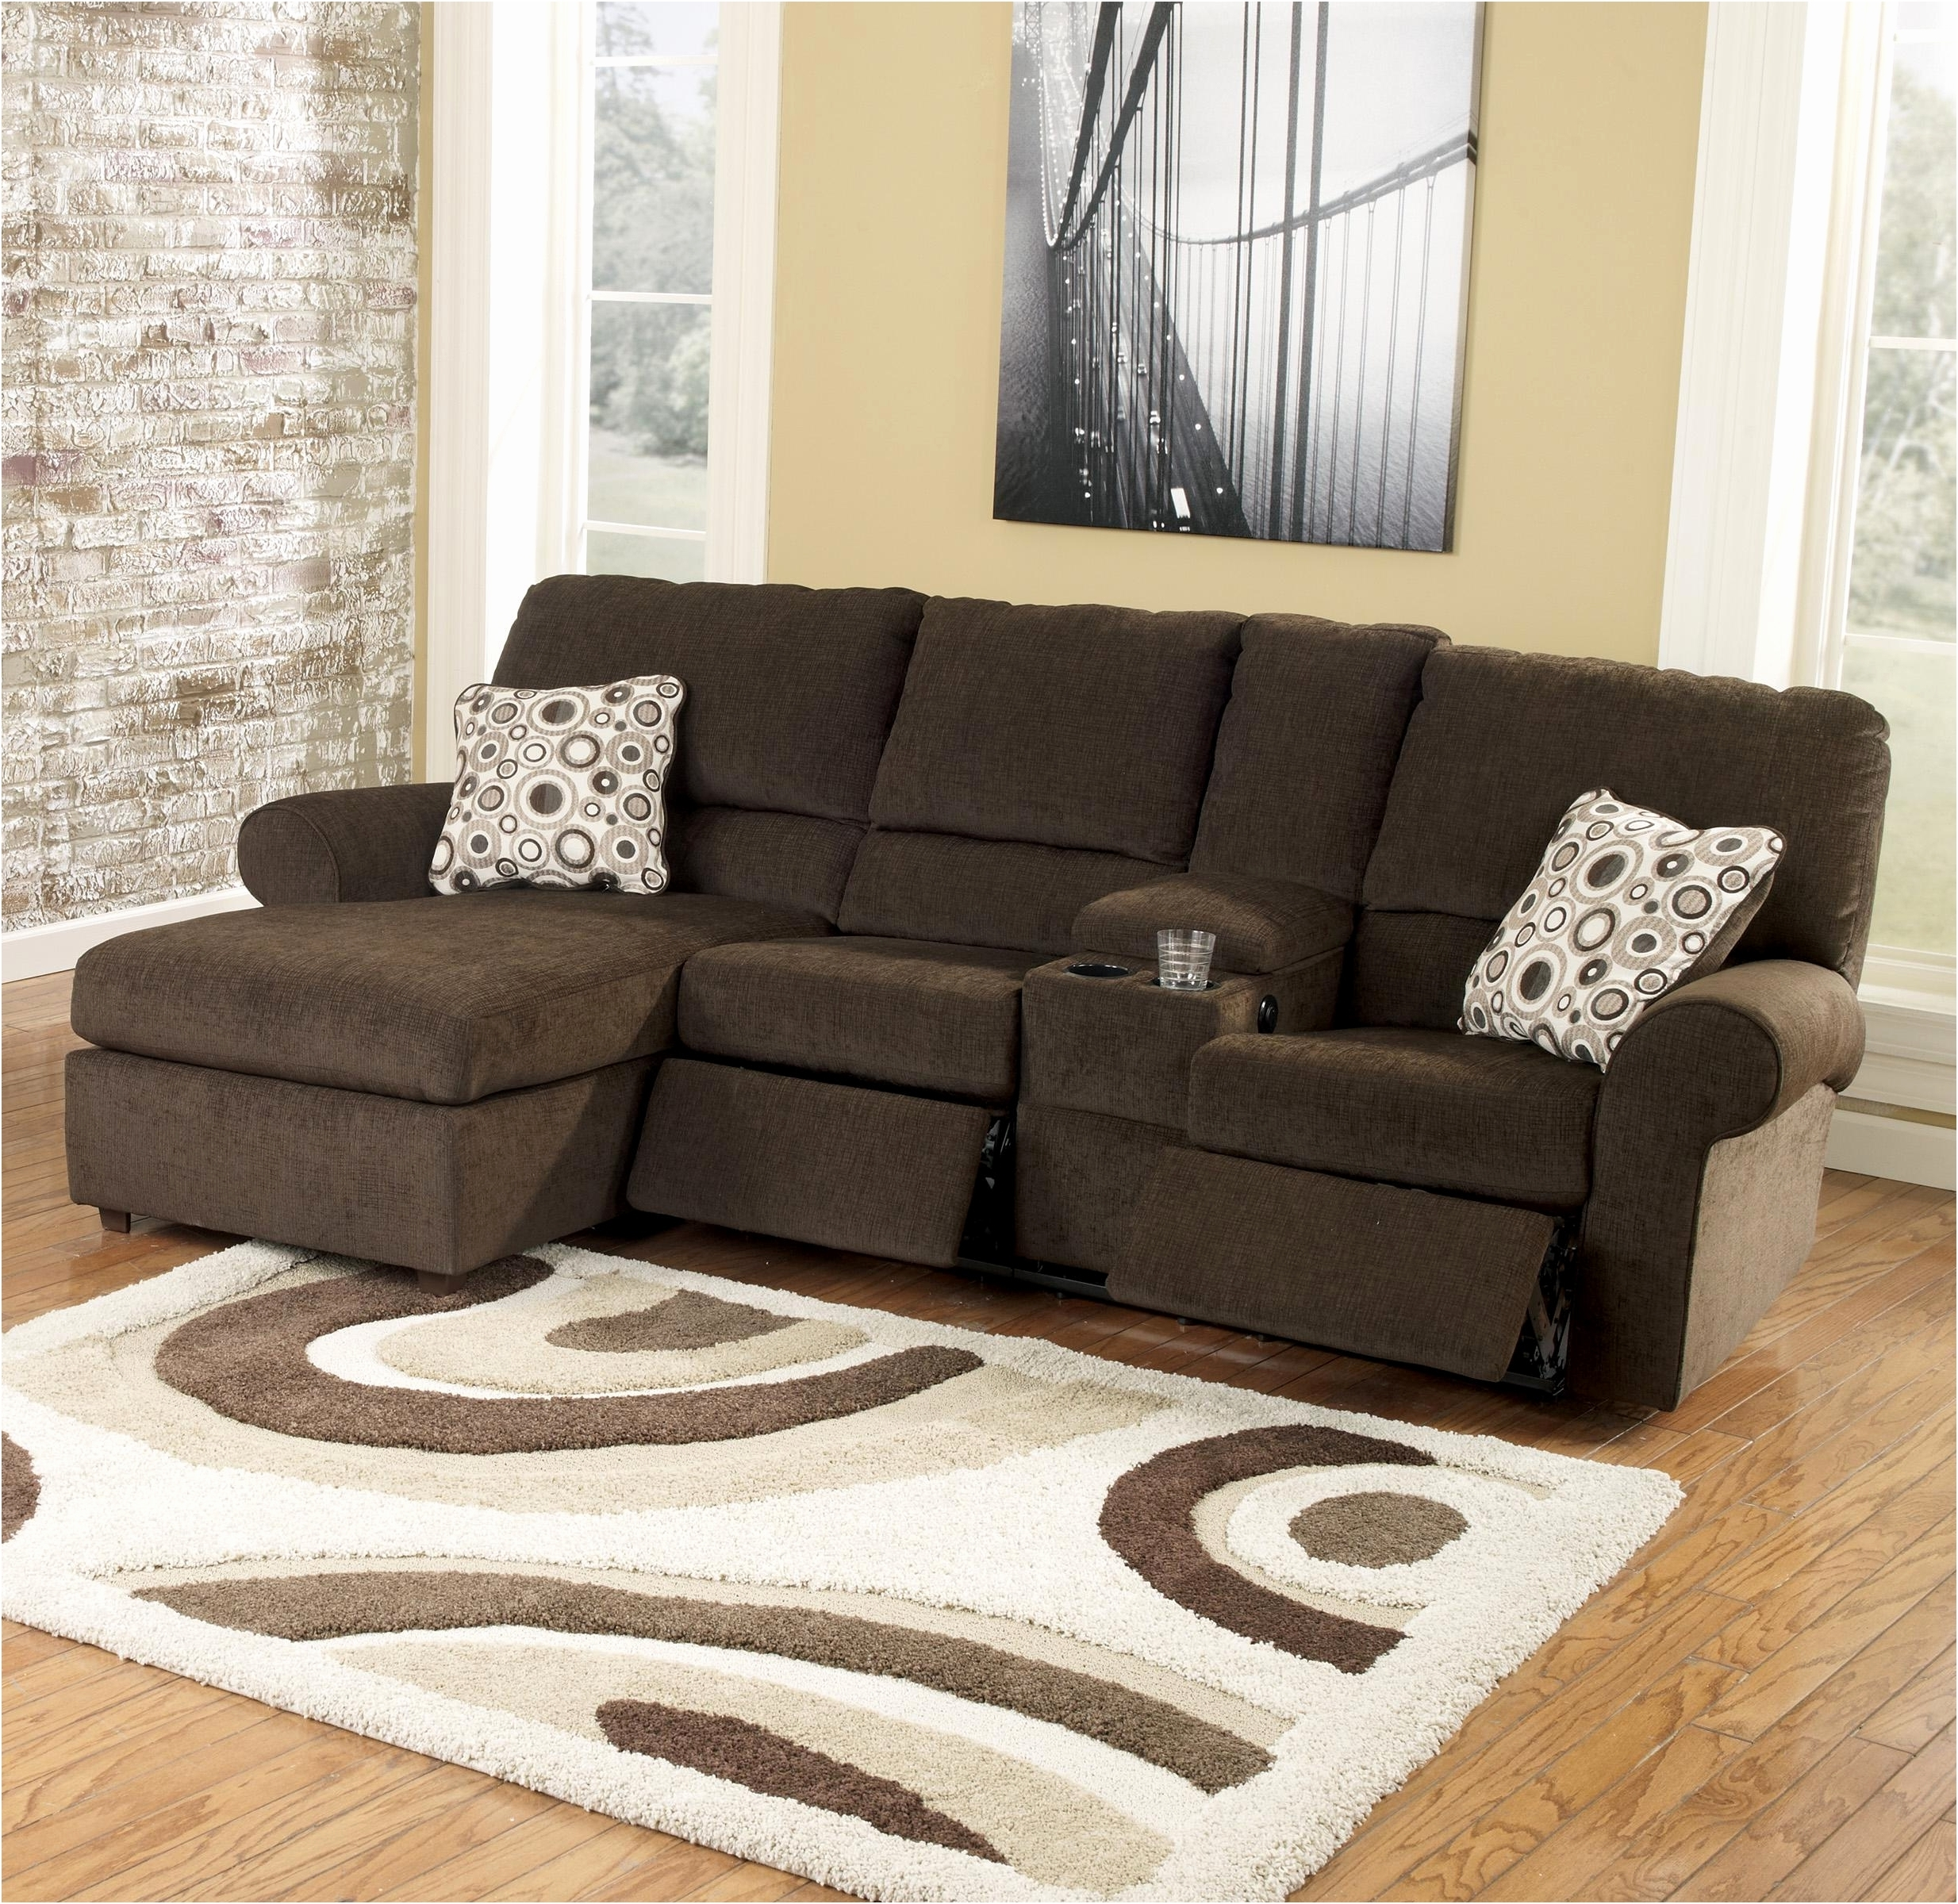 Favorite Sectional Sofas In Hyderabad With Sofa : Dorchester Sofa Set Leather Recliners Uk Sofa Bed Recliners (View 11 of 20)